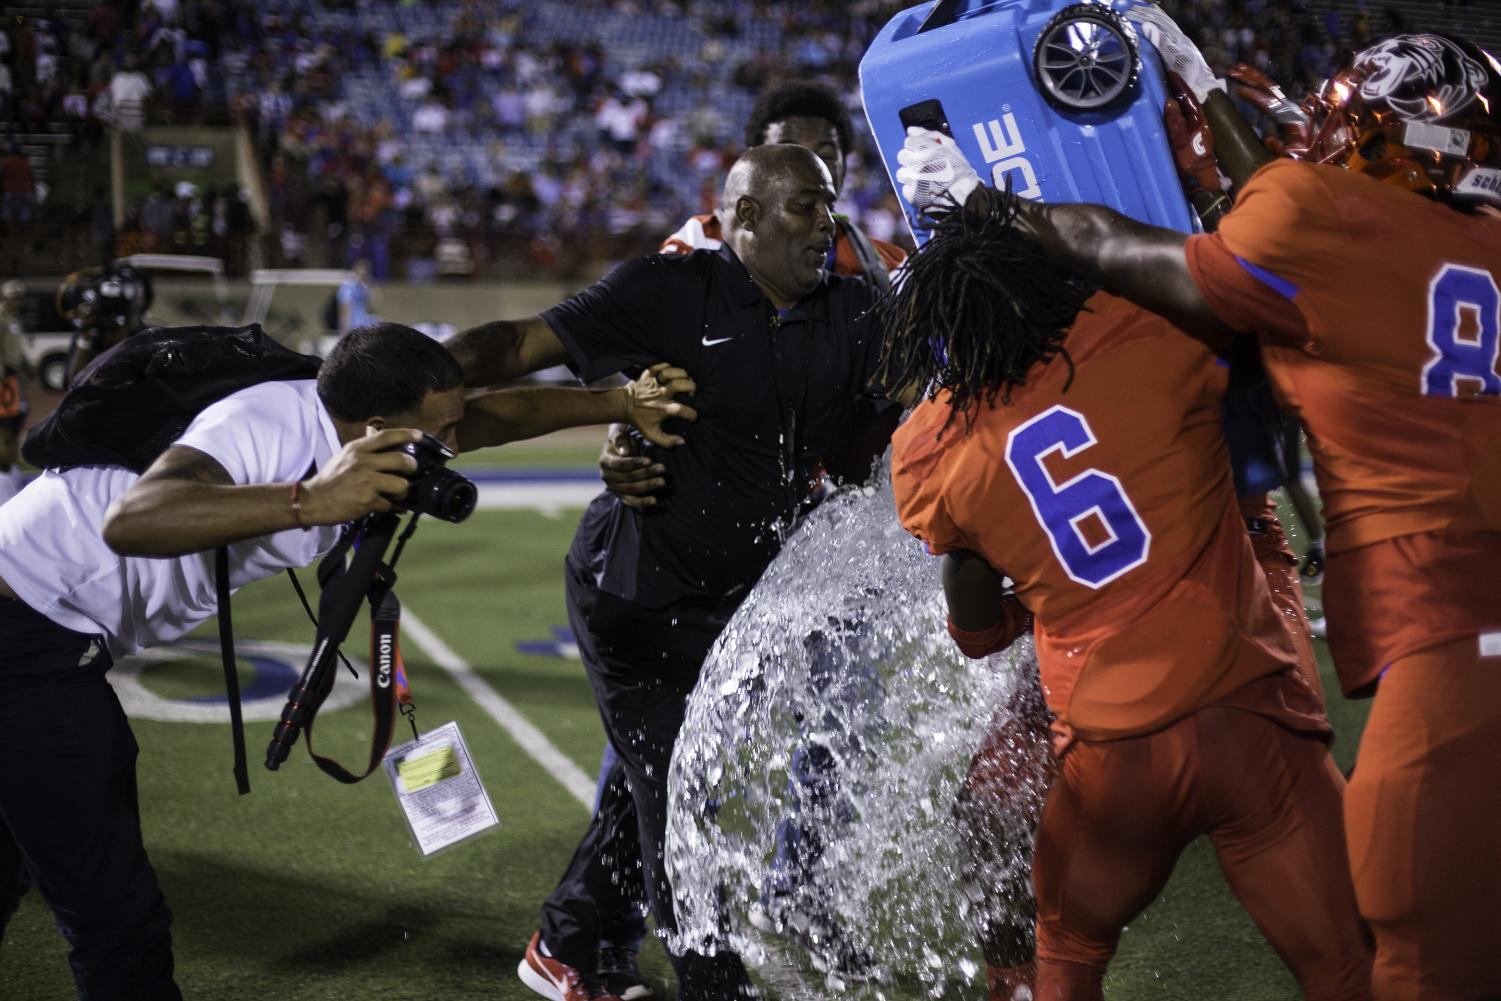 Head Coach Reginald Samples attempts to dodge a water bath after a big win against Skyline. (Brenda Arana photo)